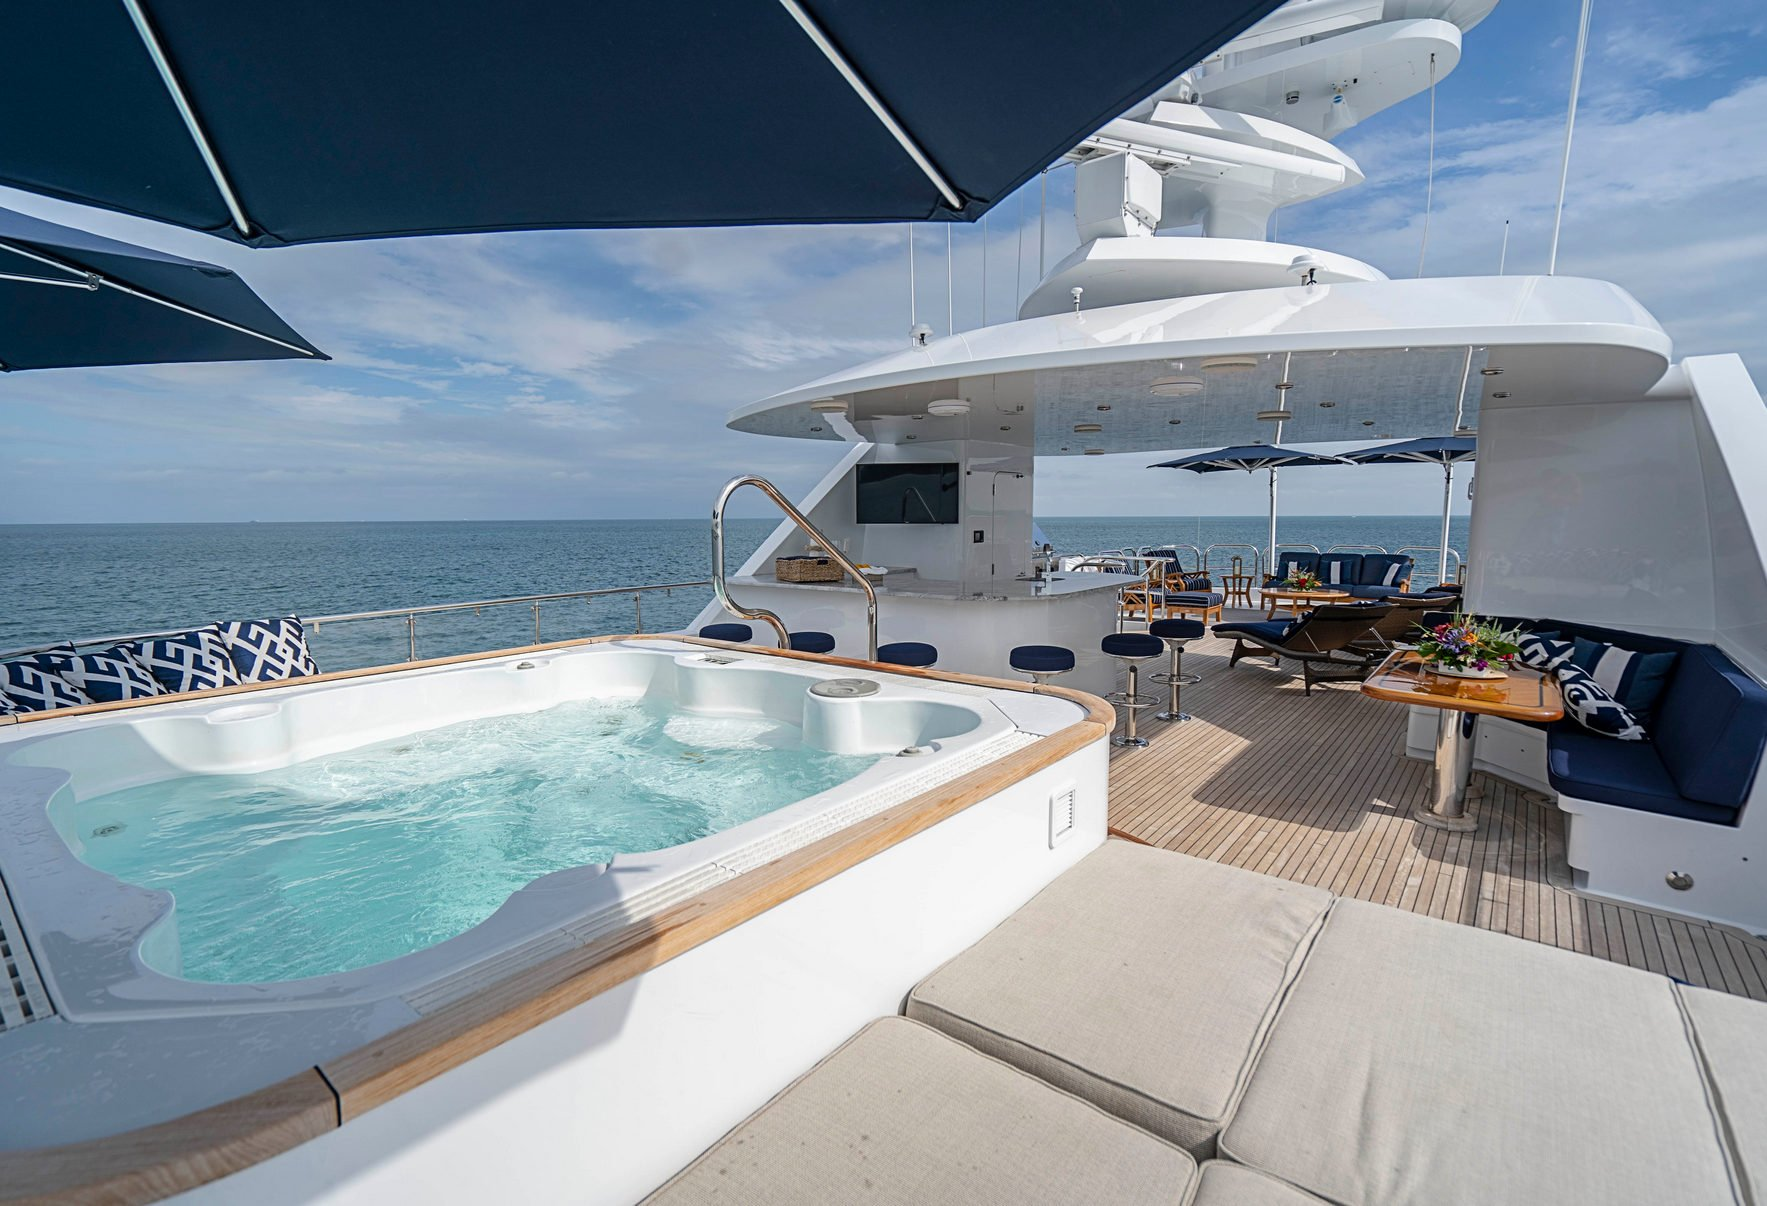 AQUASITION Sun Deck Looking Aft